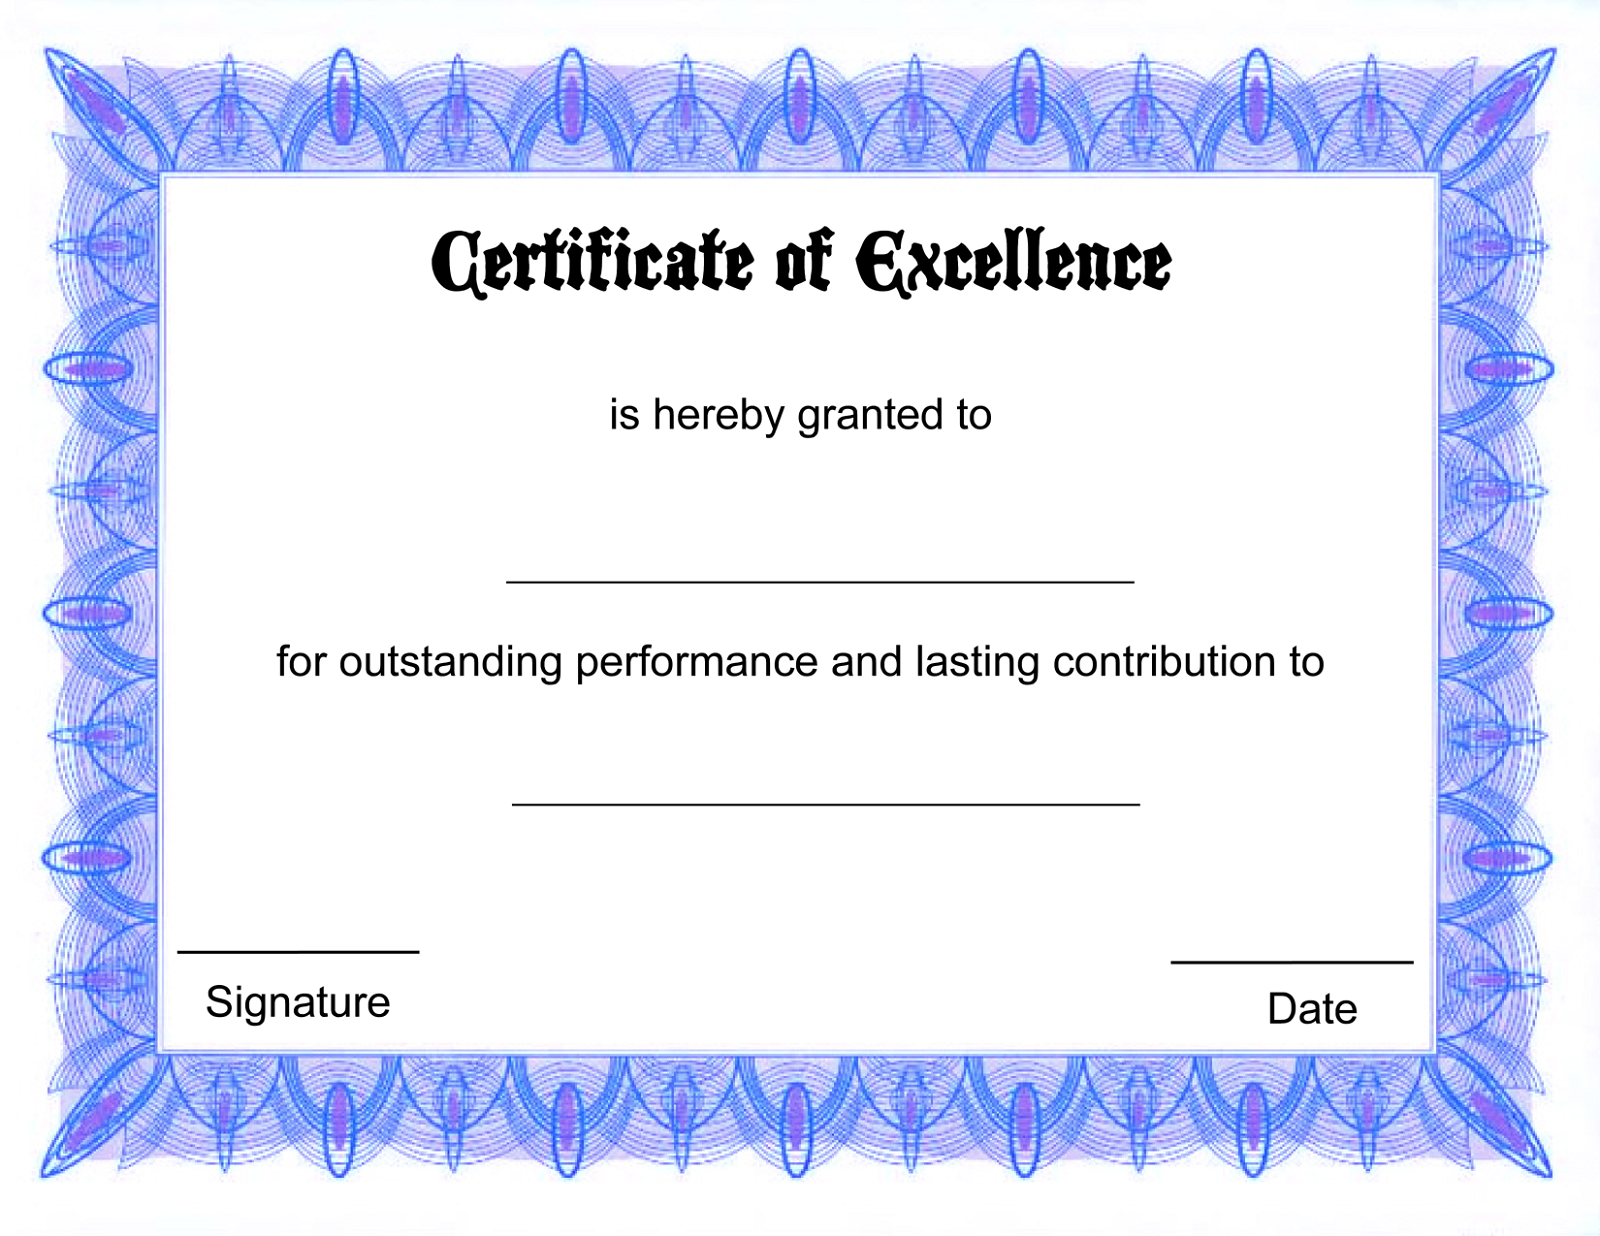 spot award certificate template - blank certificate templates to print activity shelter